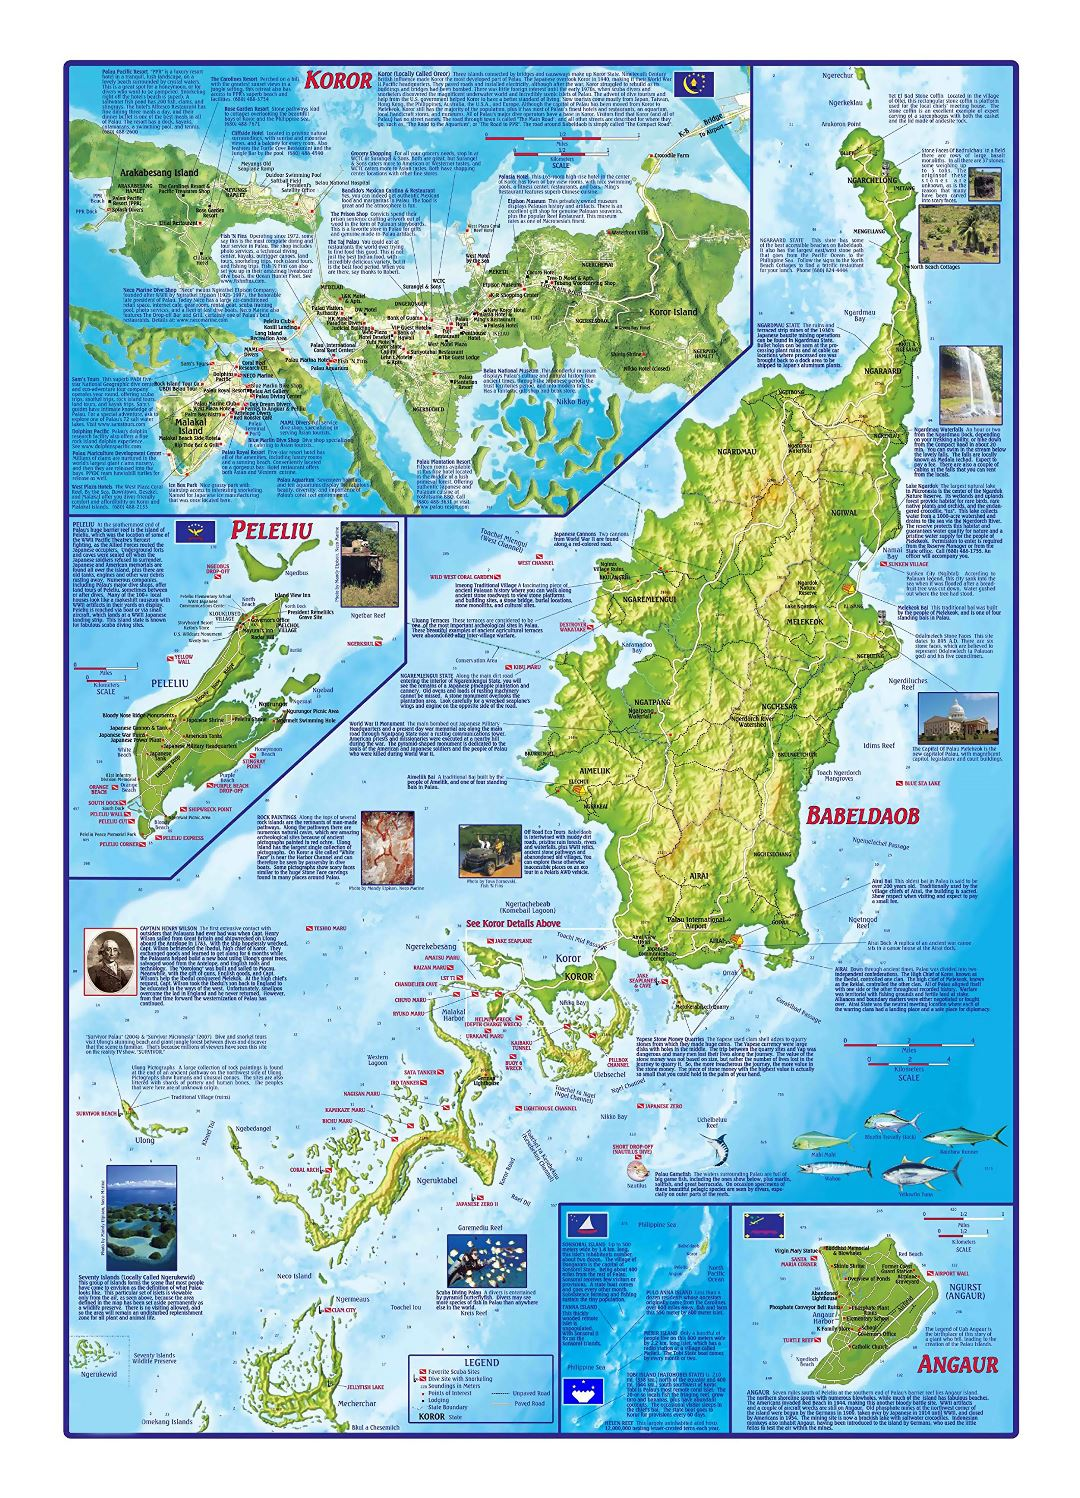 Large tourist map of Palau with relief and other marks